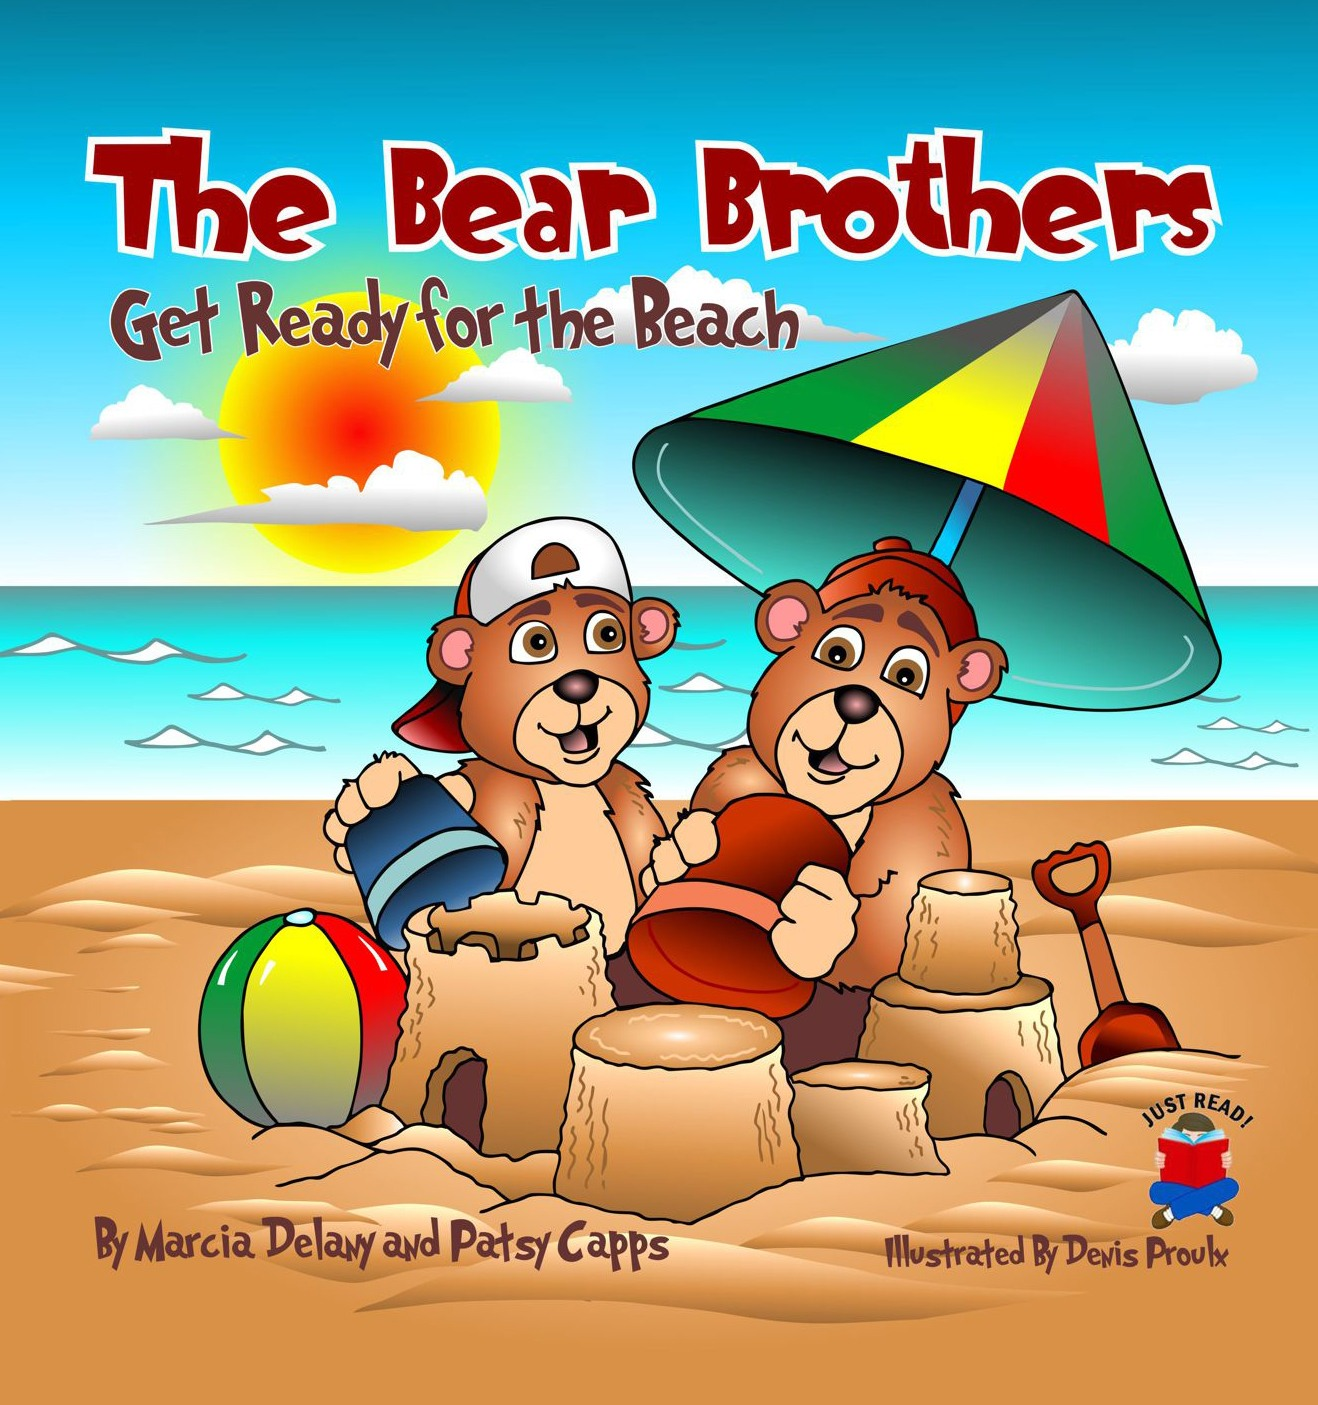 The Bear Brothers Get Ready for the Beach